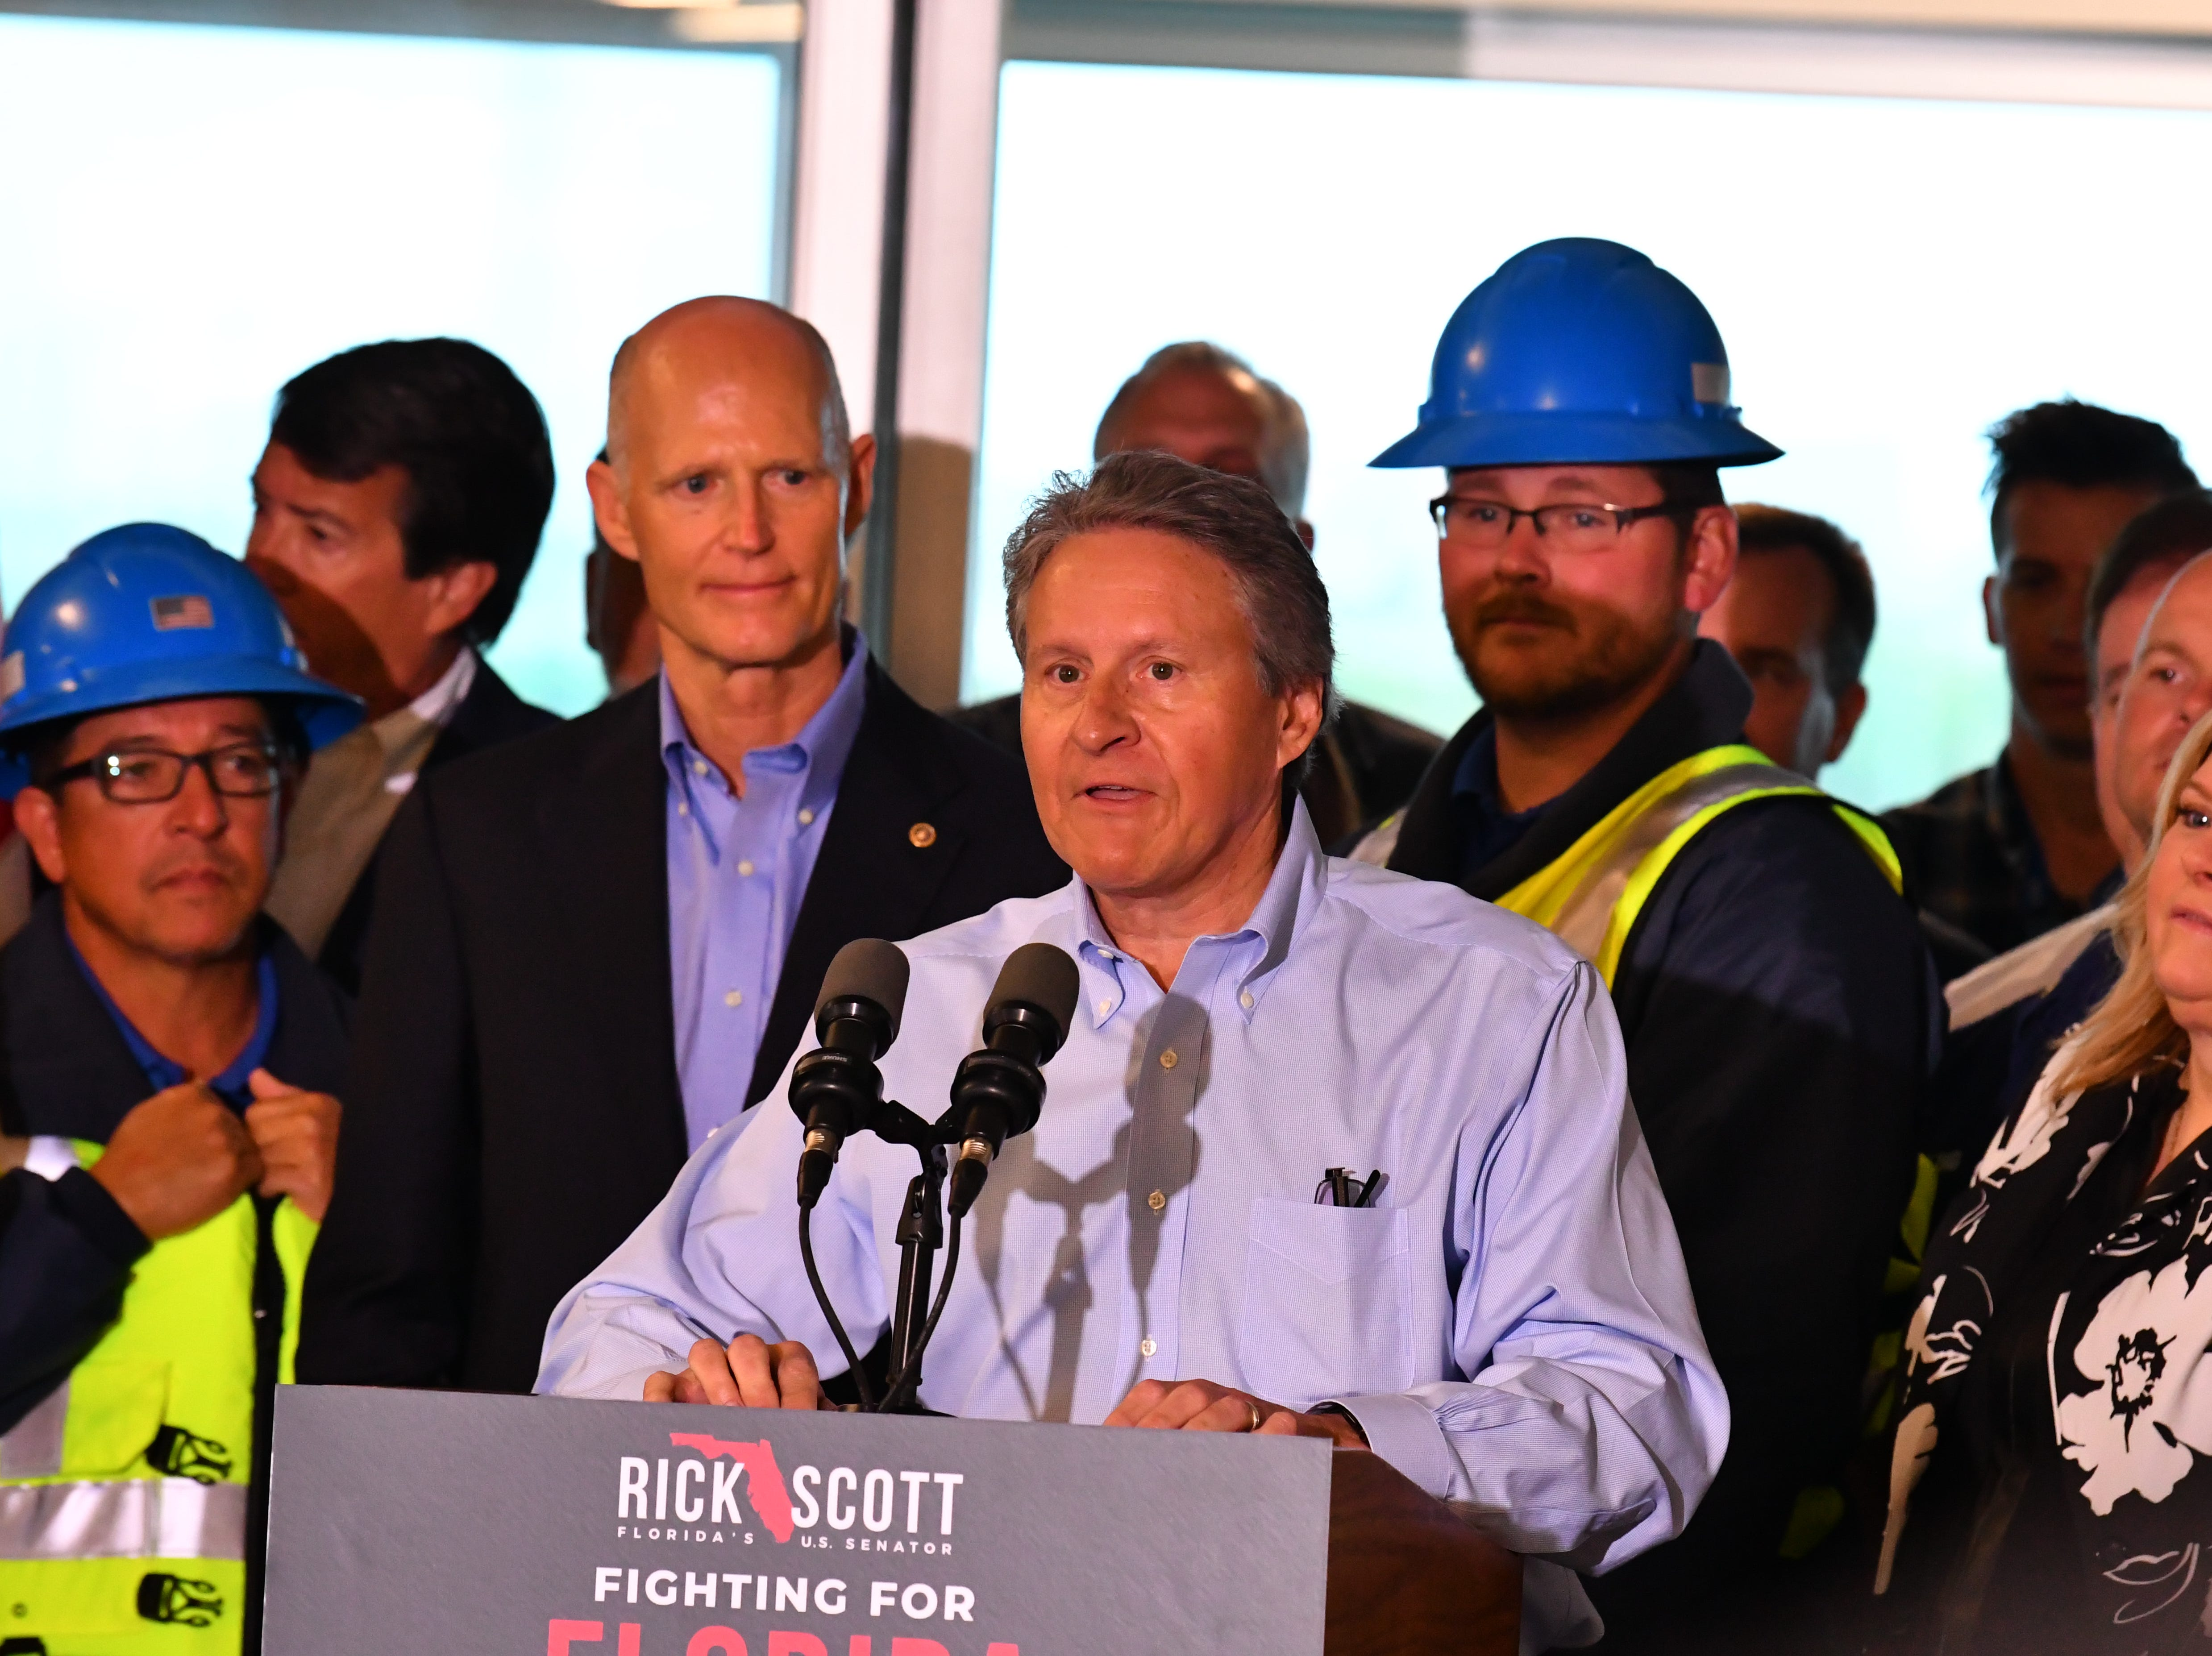 Sen. Rick Scott held a press conference at Terminal 5 Tuesday morning at Port Canaveral, pledging to work for $140 million in the budget for Florida ports. Port CEO John Murray made some comments after the senator.